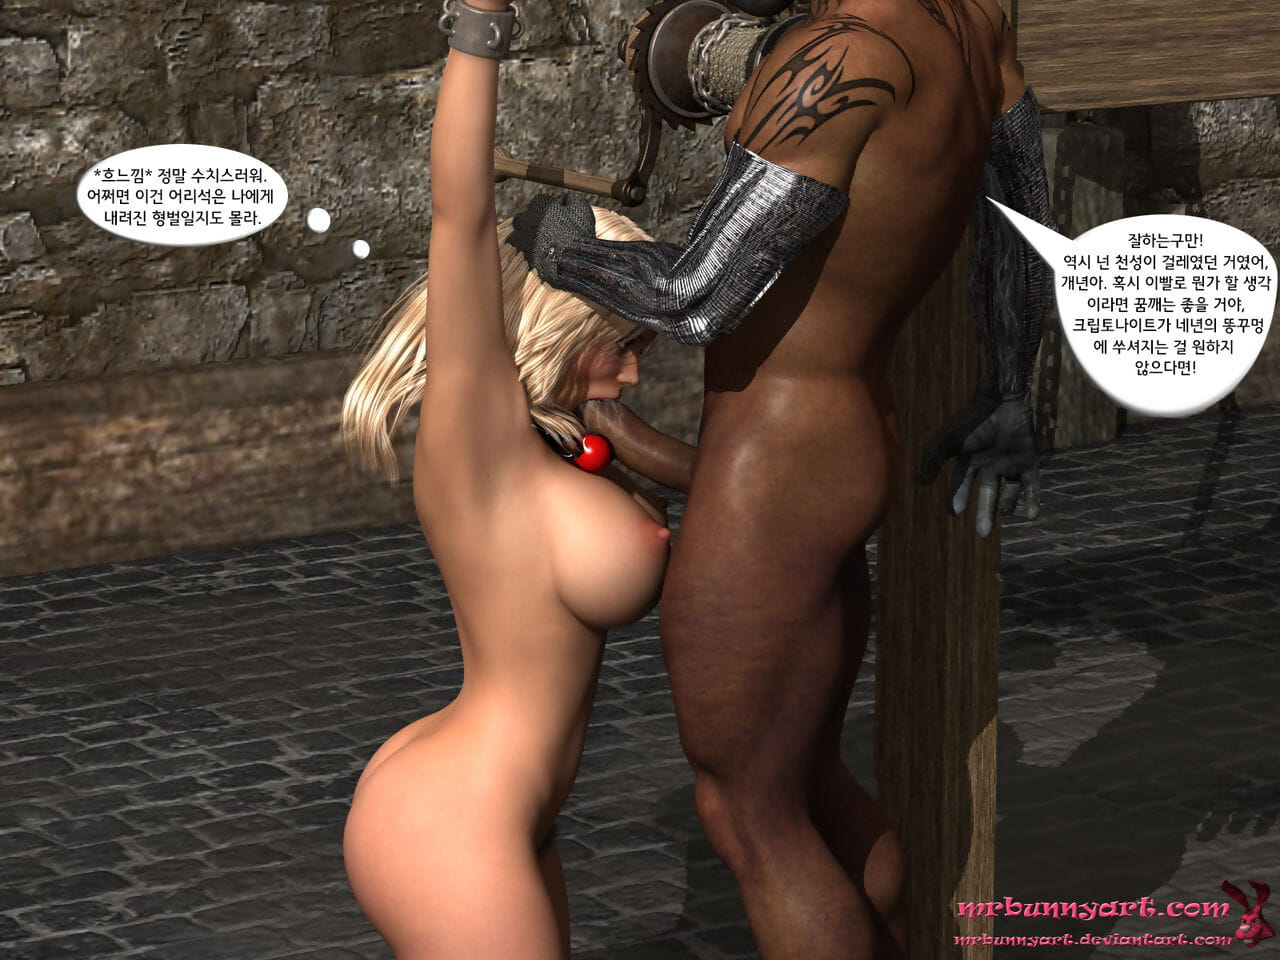 MrBunnyArt Supergirl Vs Cain Supergirl Korean - part 3